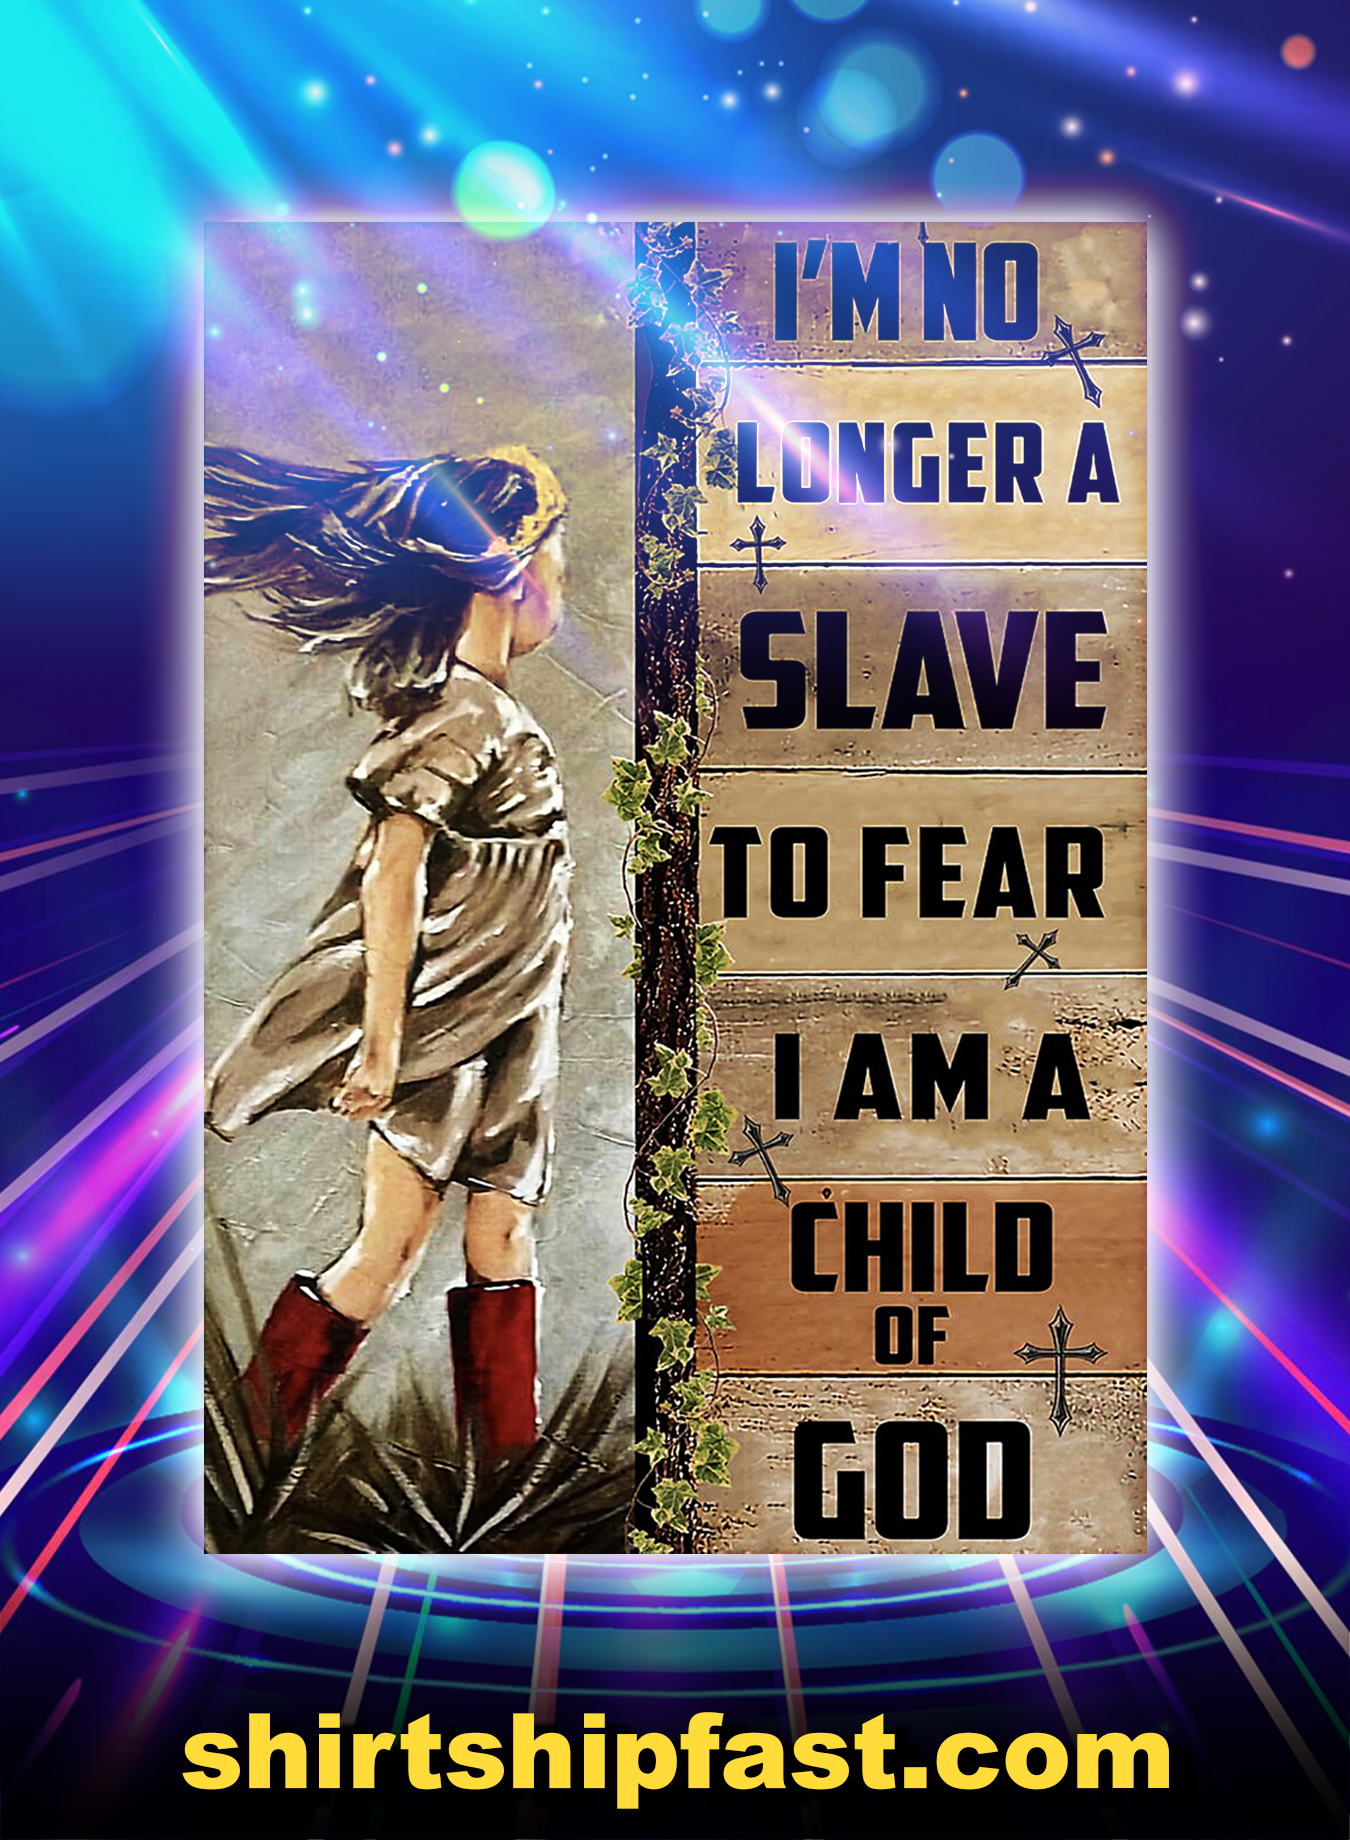 I'm no longer a slave to fear i am a child of god poster - A3